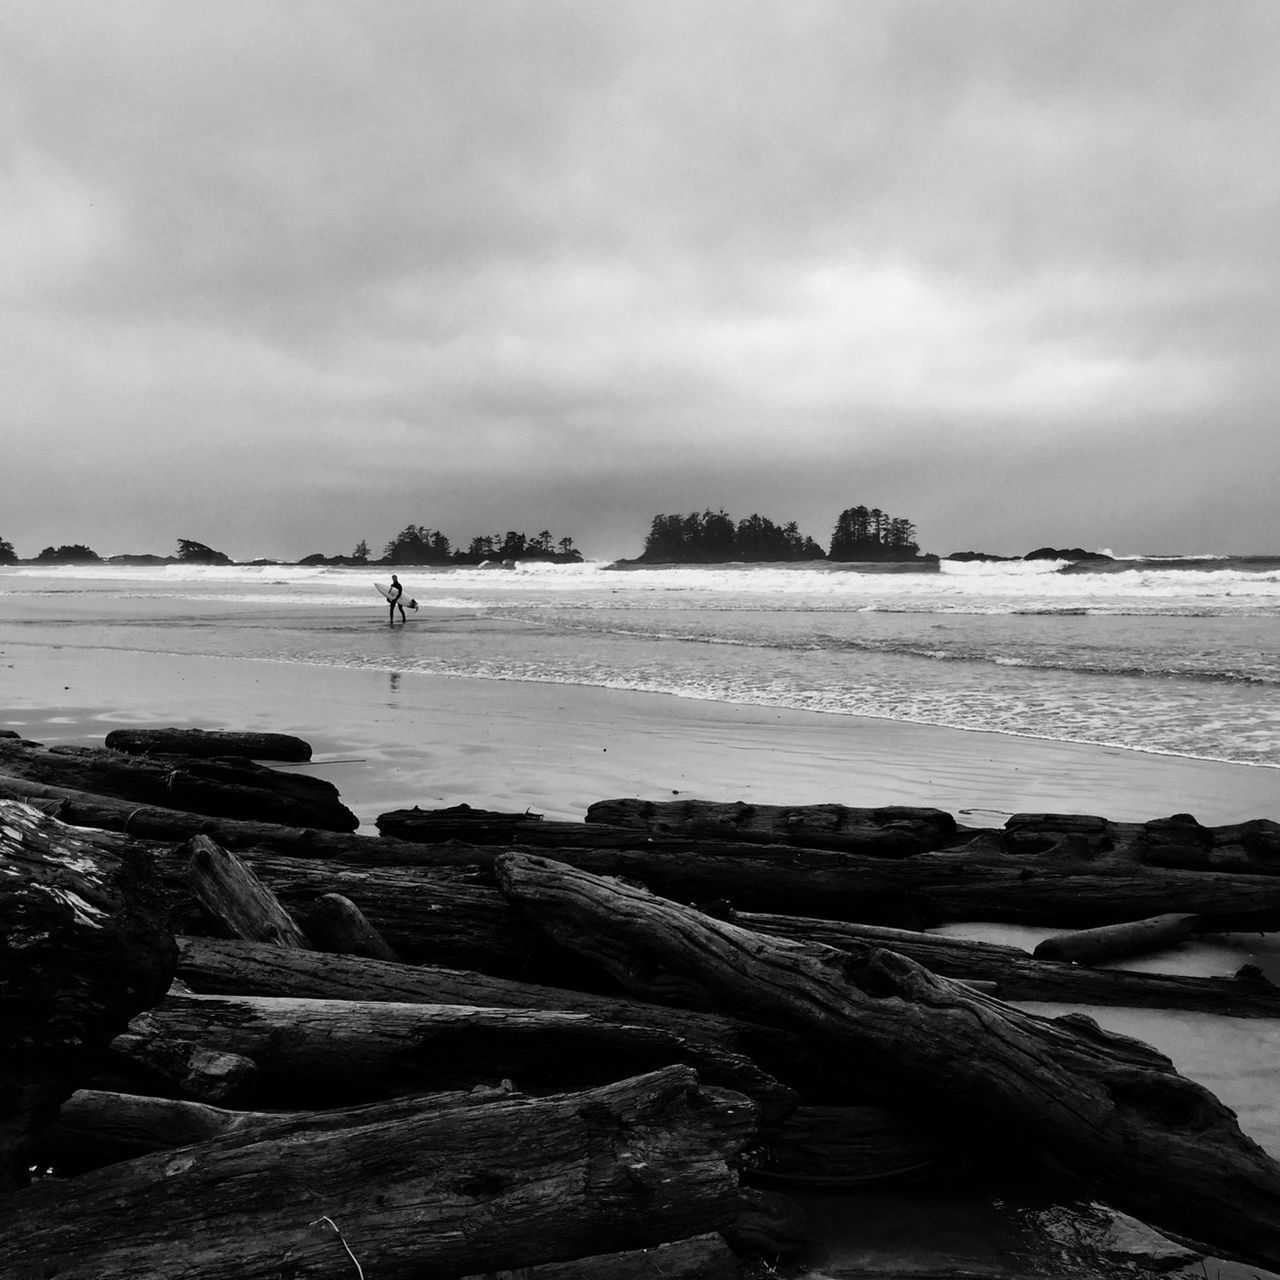 Beach Beauty In Nature Black And White Photography Cloud - Sky Day Horizon Over Water Nature No People Outdoors Rock - Object Sand Scenics Sea Shore Sky Tranquil Scene Tranquility Travel Destinations Vacations Vancouver Island Canada Water Wave